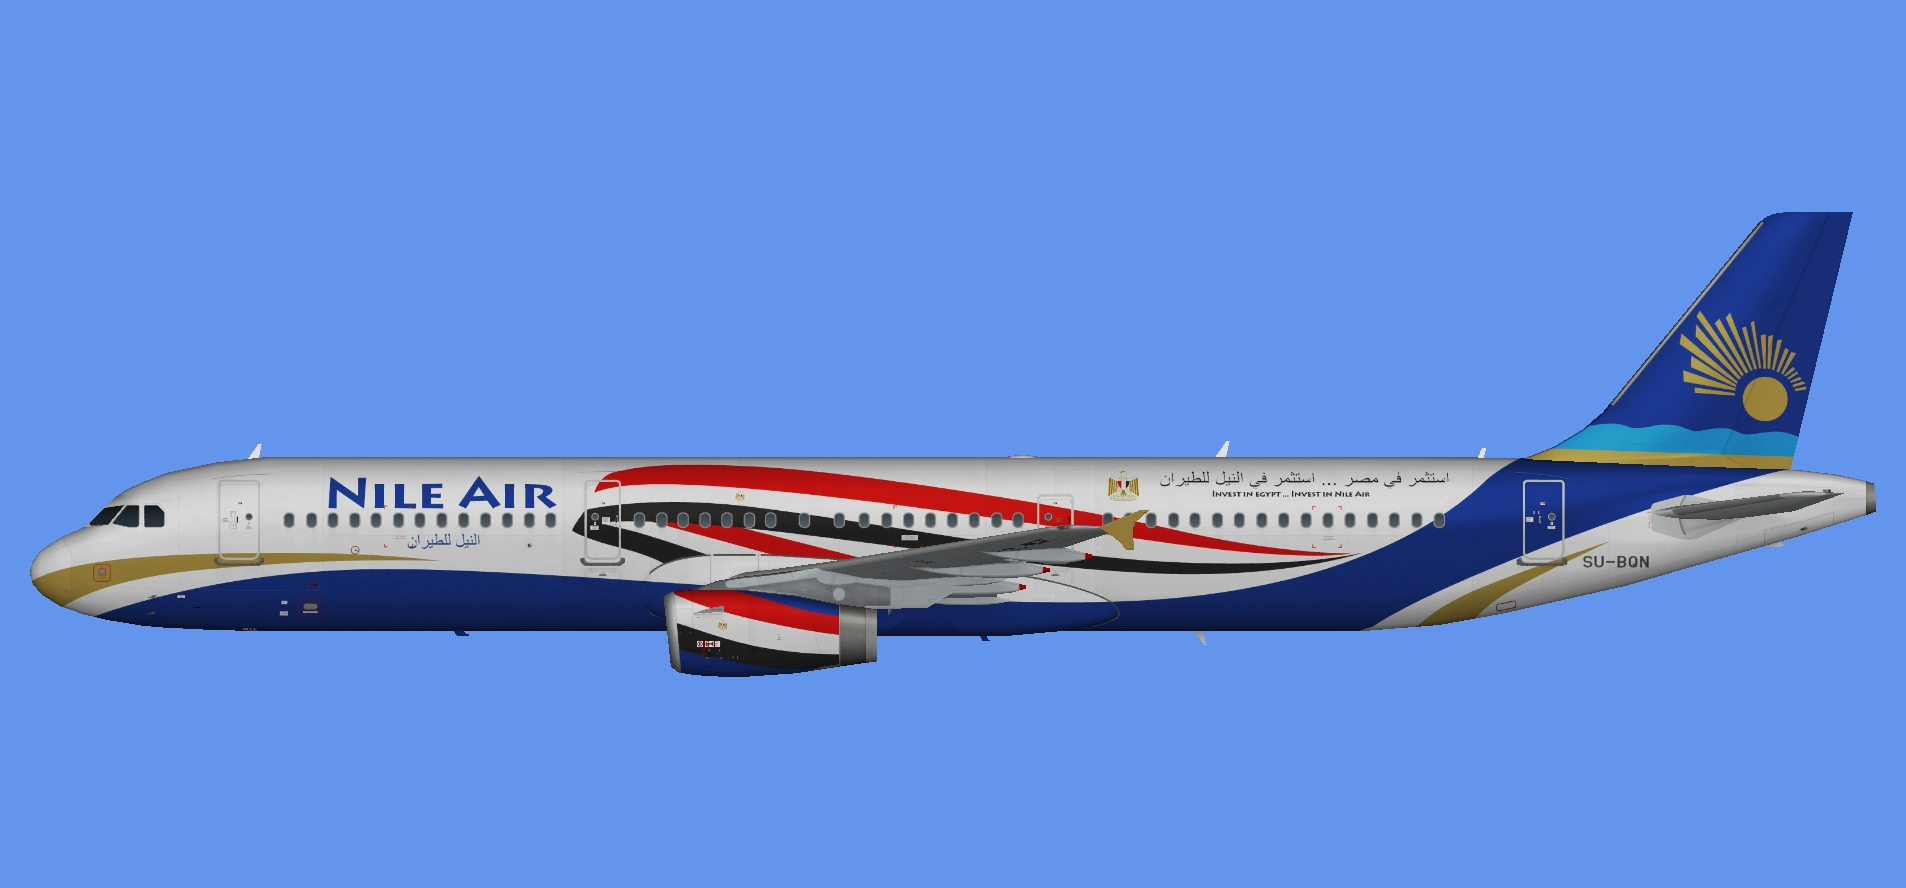 Nile Air A321 'Invest in Egypt'